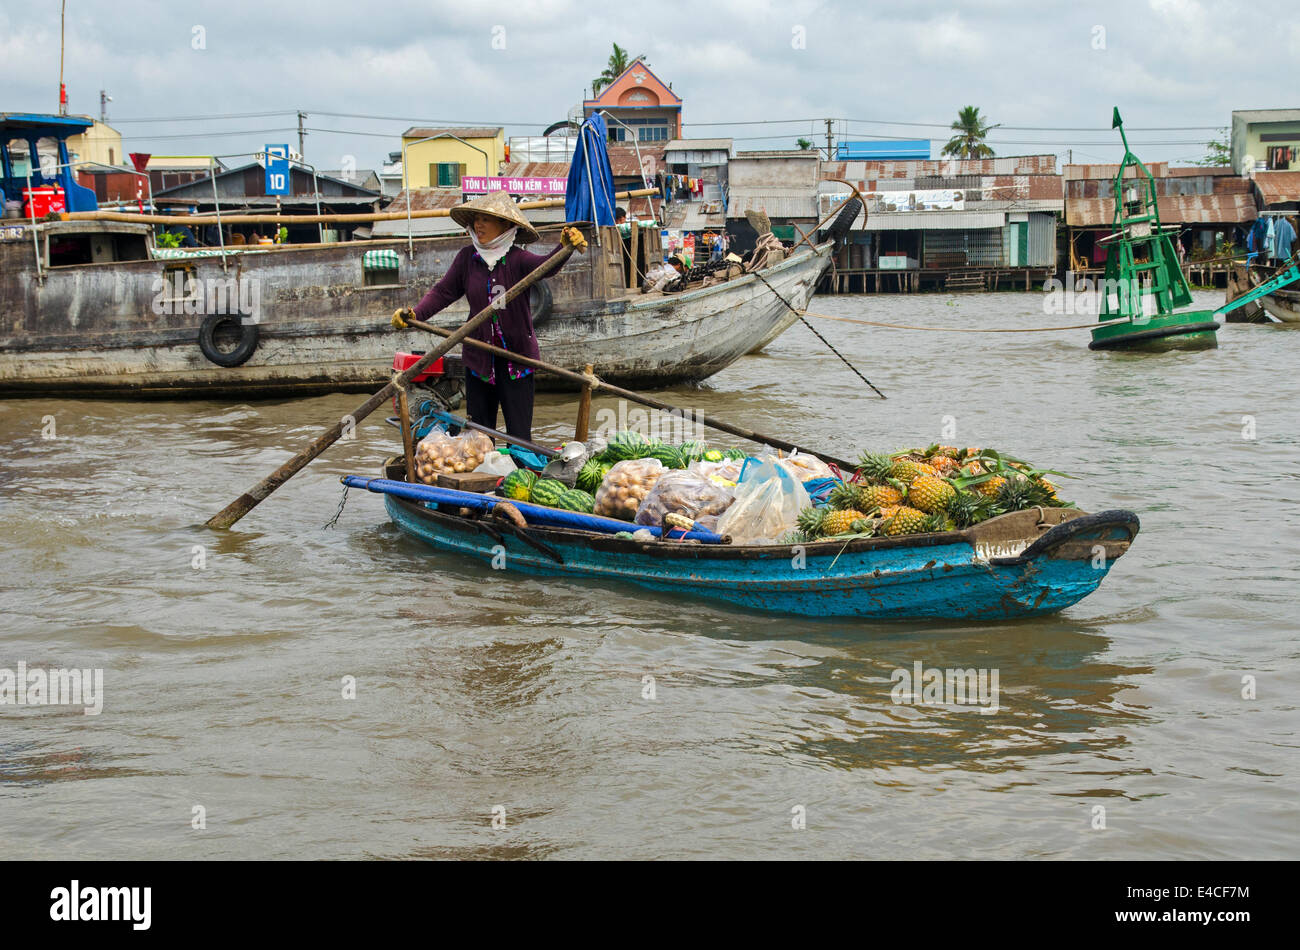 Woman selling fruit & vegetables, Can Rang floating market, Can Tho, Vietnam - Stock Image